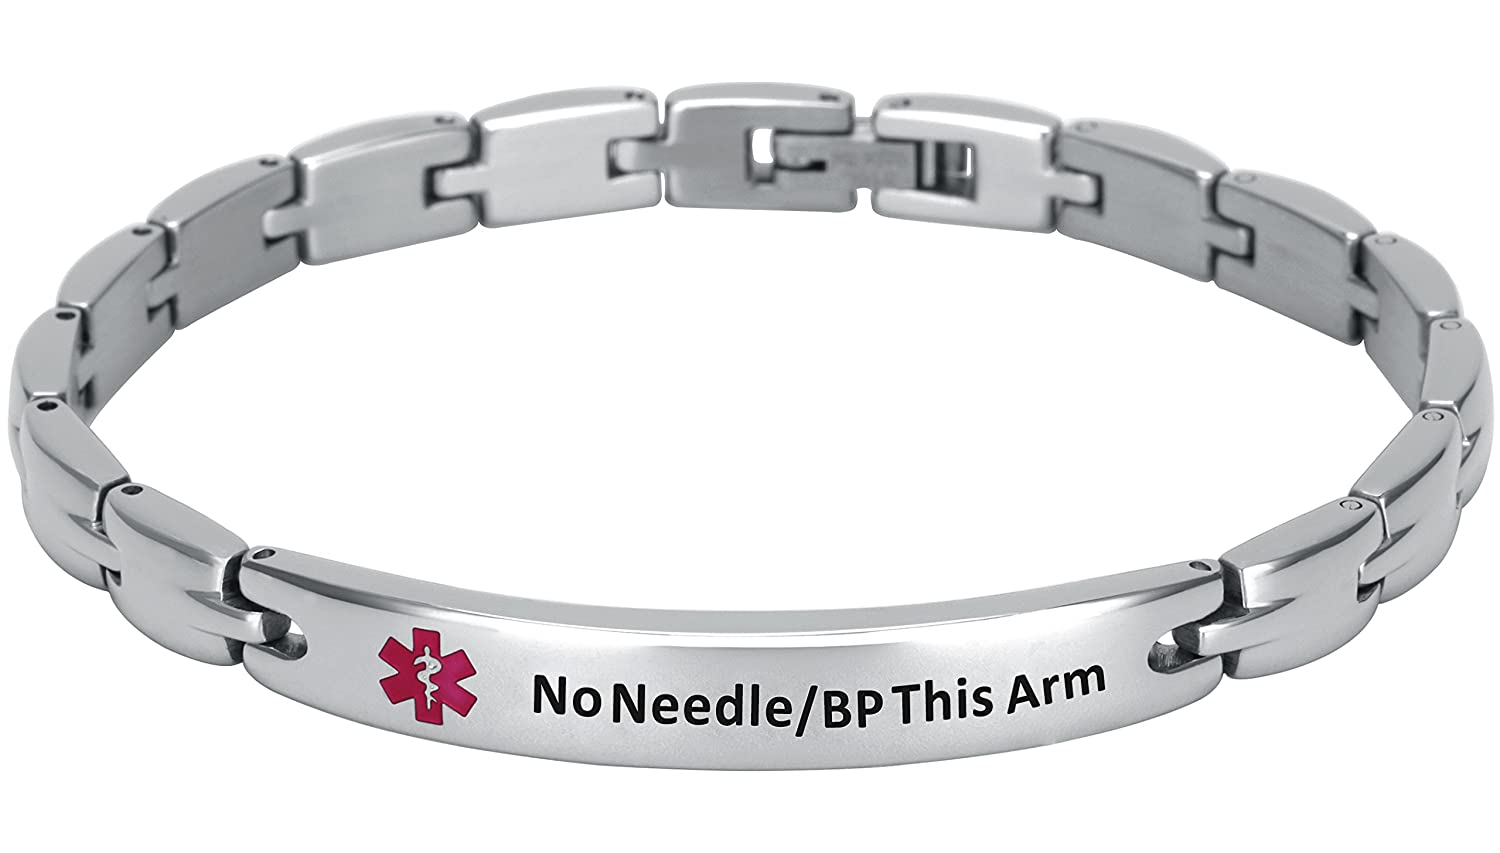 Elegant Surgical Grade Steel Medical Alert ID Bracelet For Men and Women Women s, No Needle BP This Arm